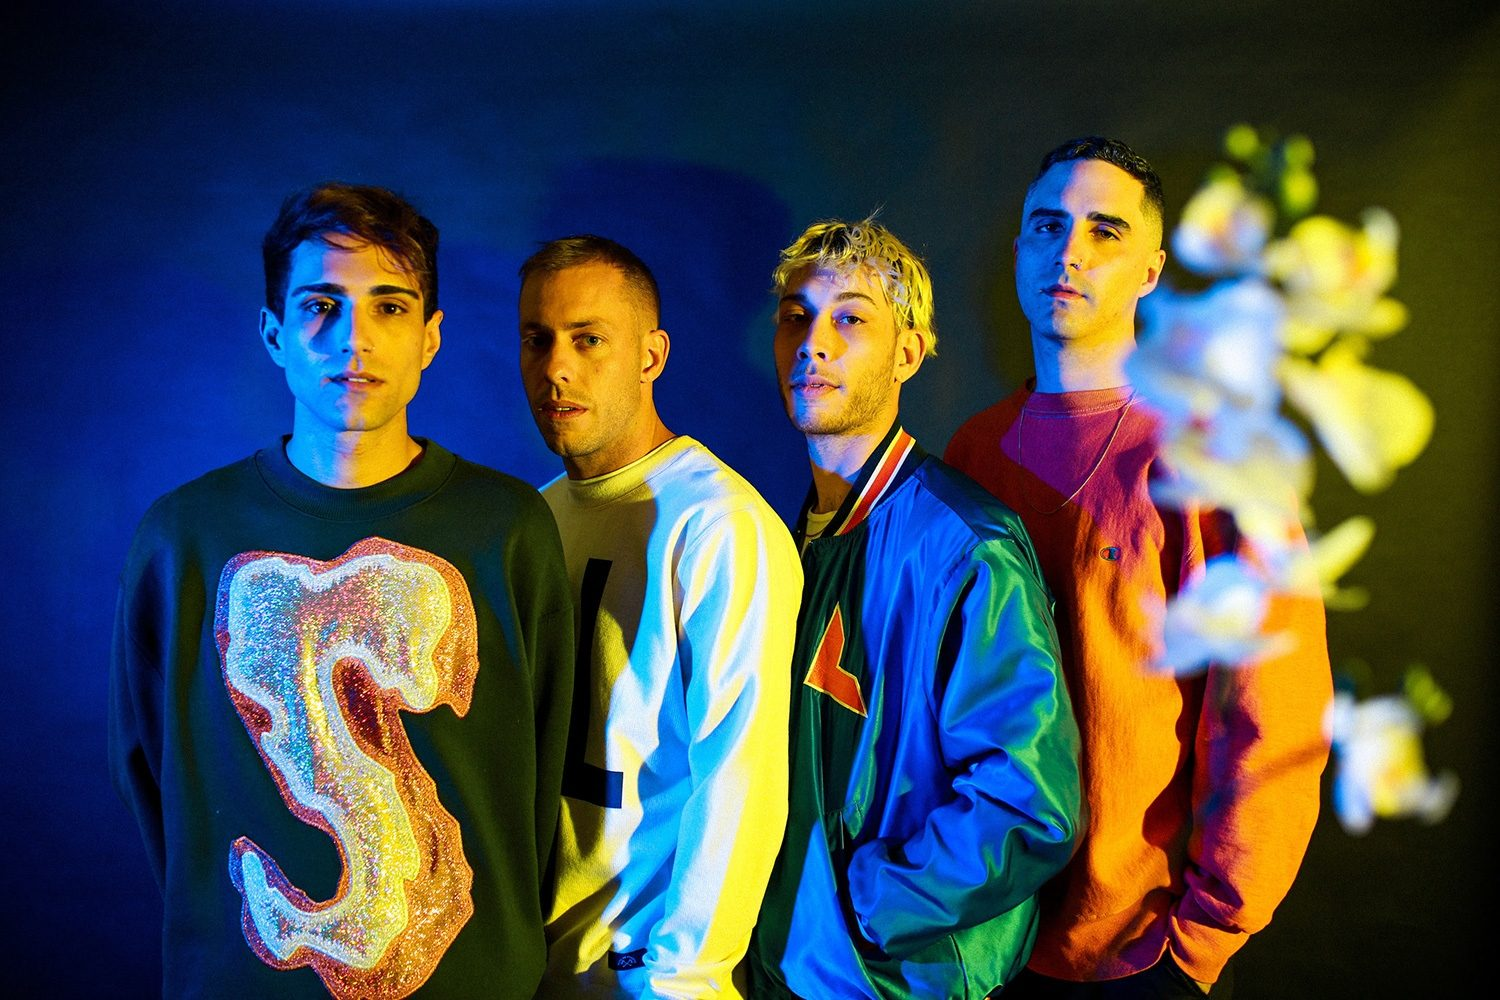 Hellions' new album 'Rue' will arrive in October